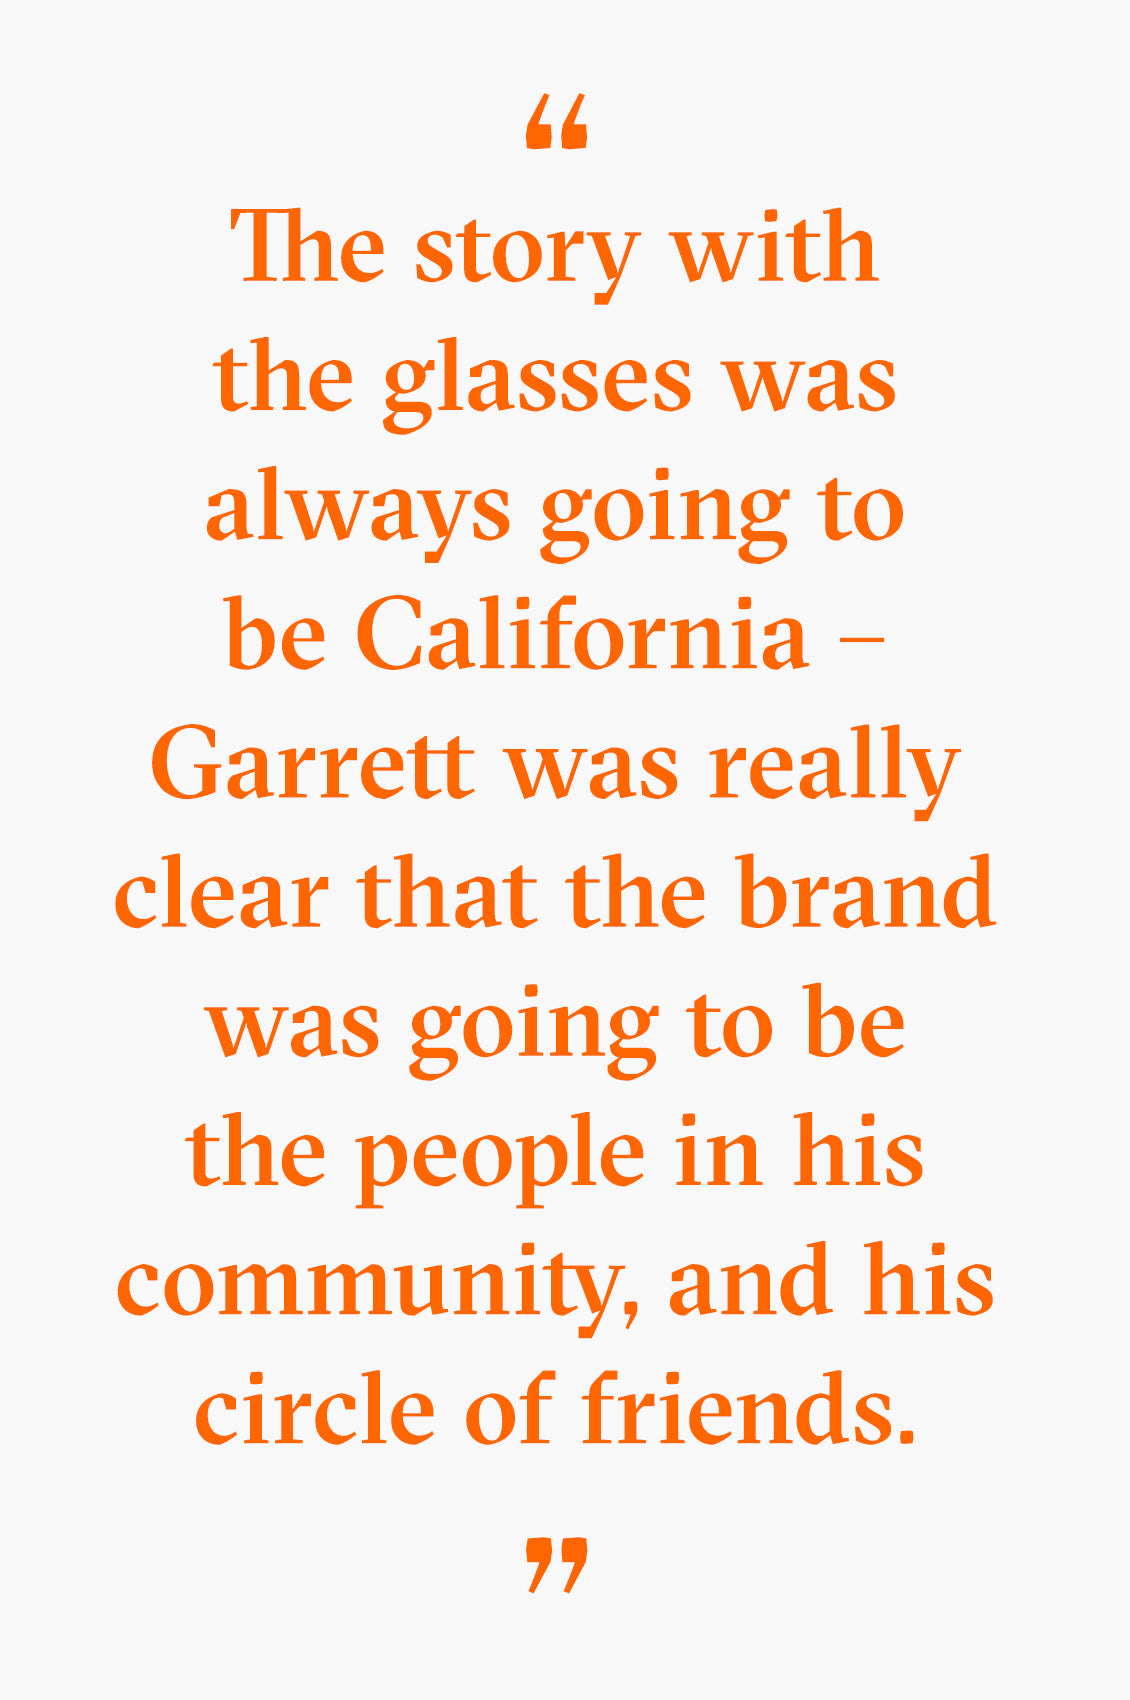 Quote by Mark Gainor about Garrett Leight